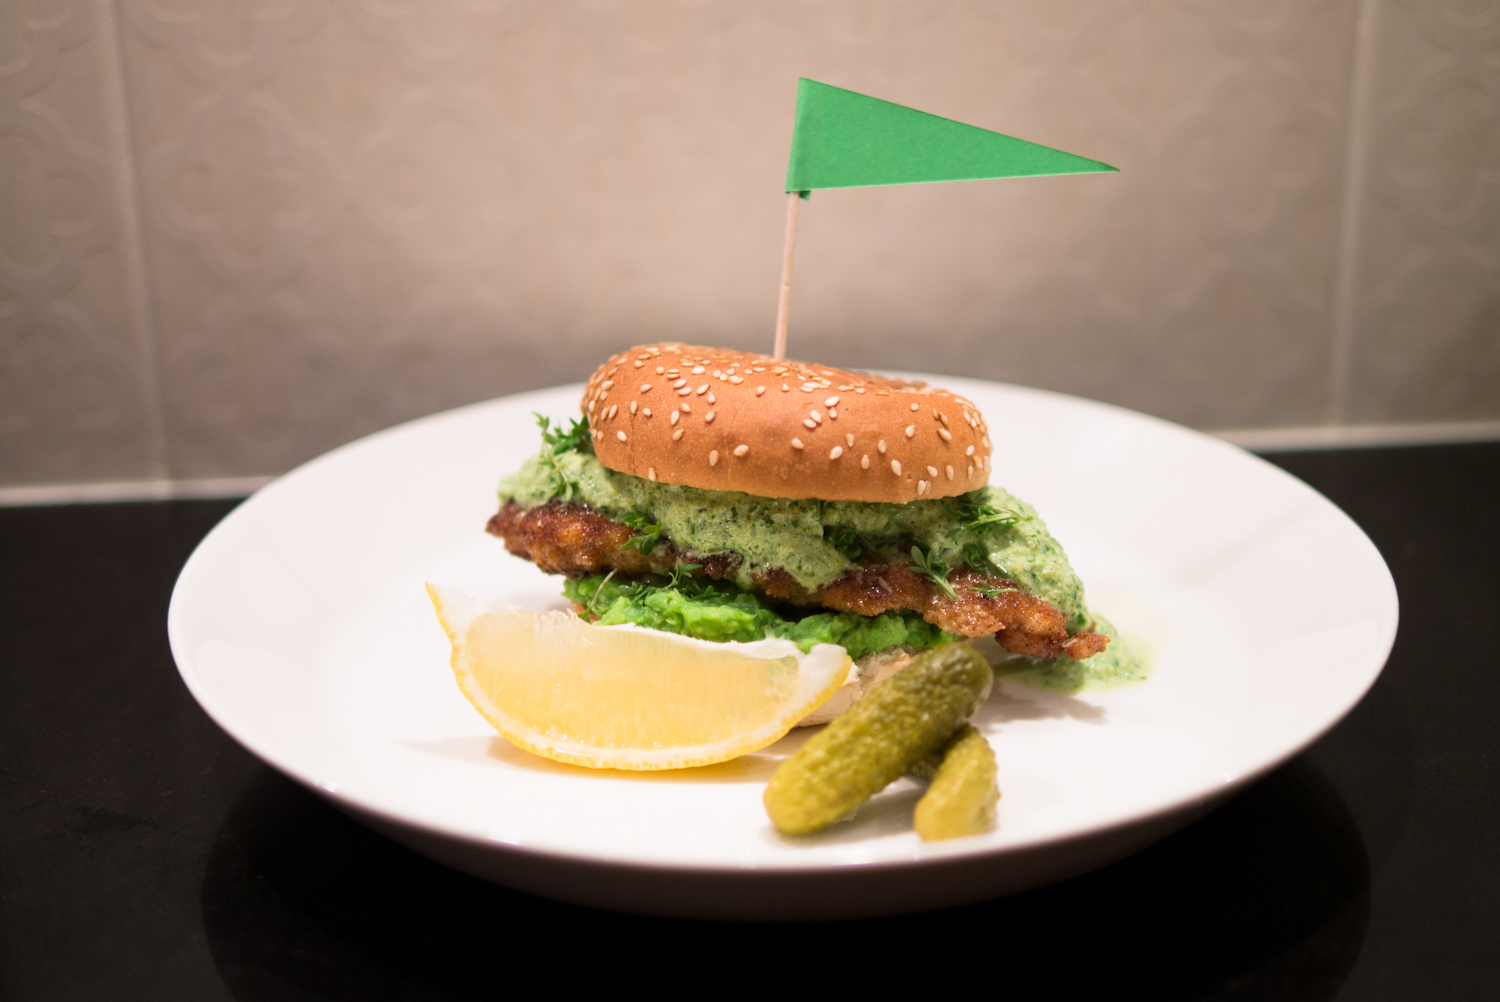 Fish burger with mushy peas & tartare sauce